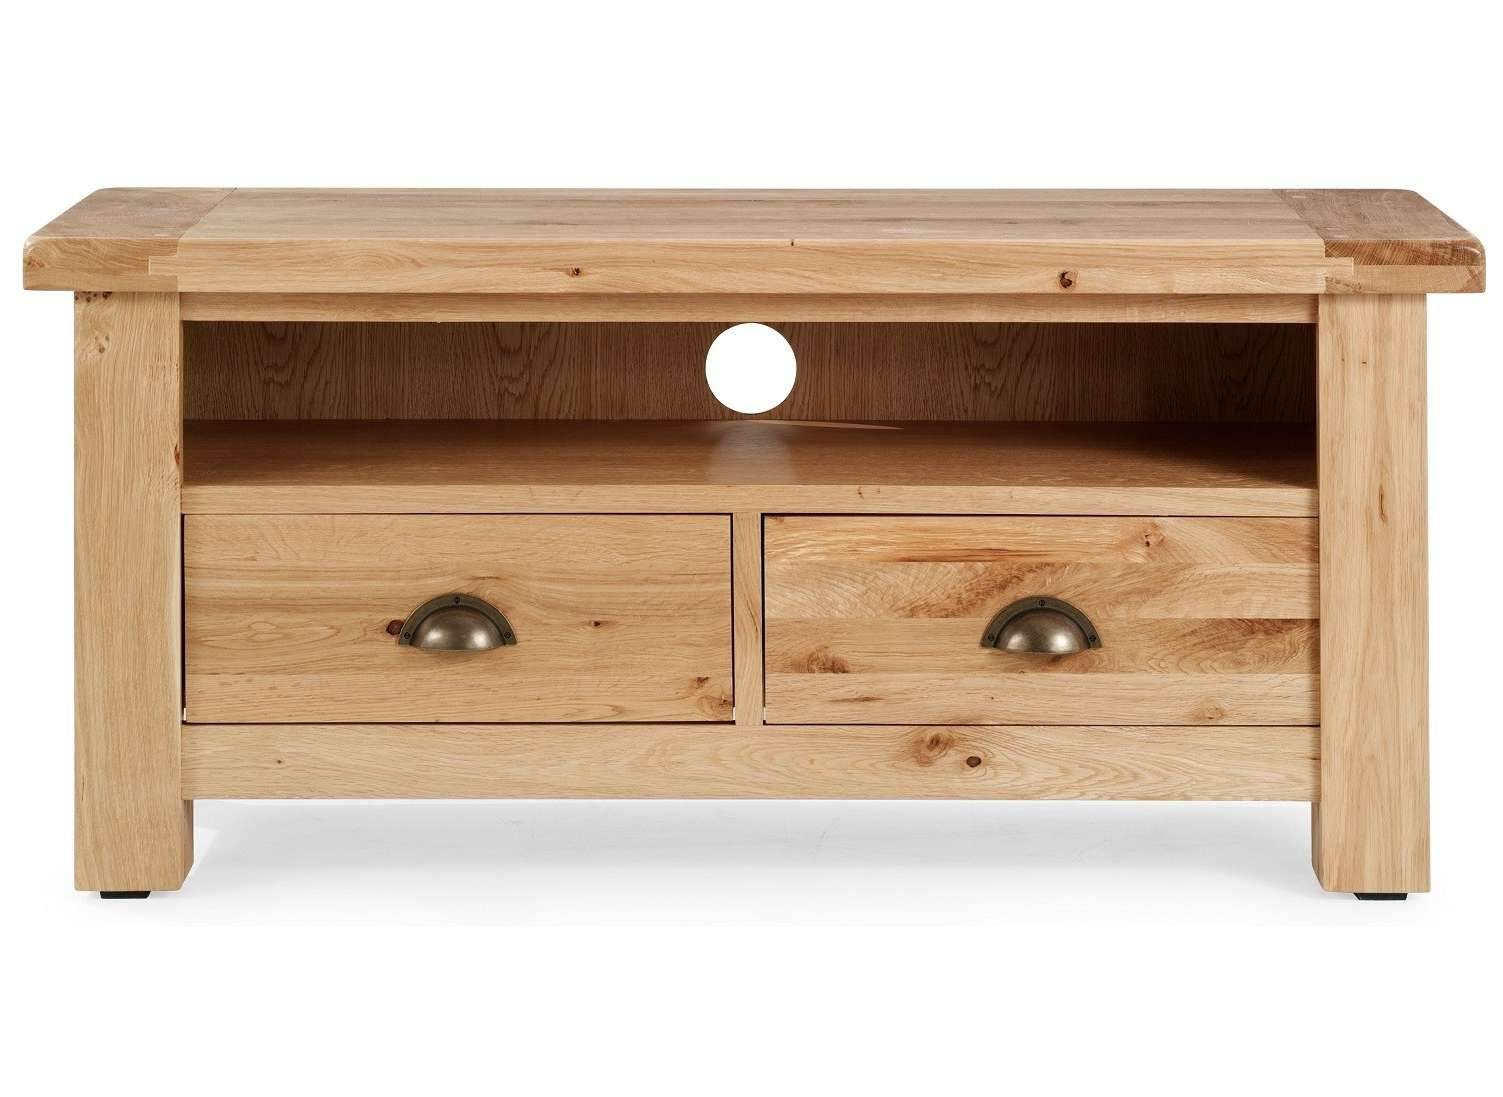 Normandy Rustic French Oak Tv Cabinet | Oak Furniture Uk Inside Rustic Corner Tv Cabinets (View 12 of 20)